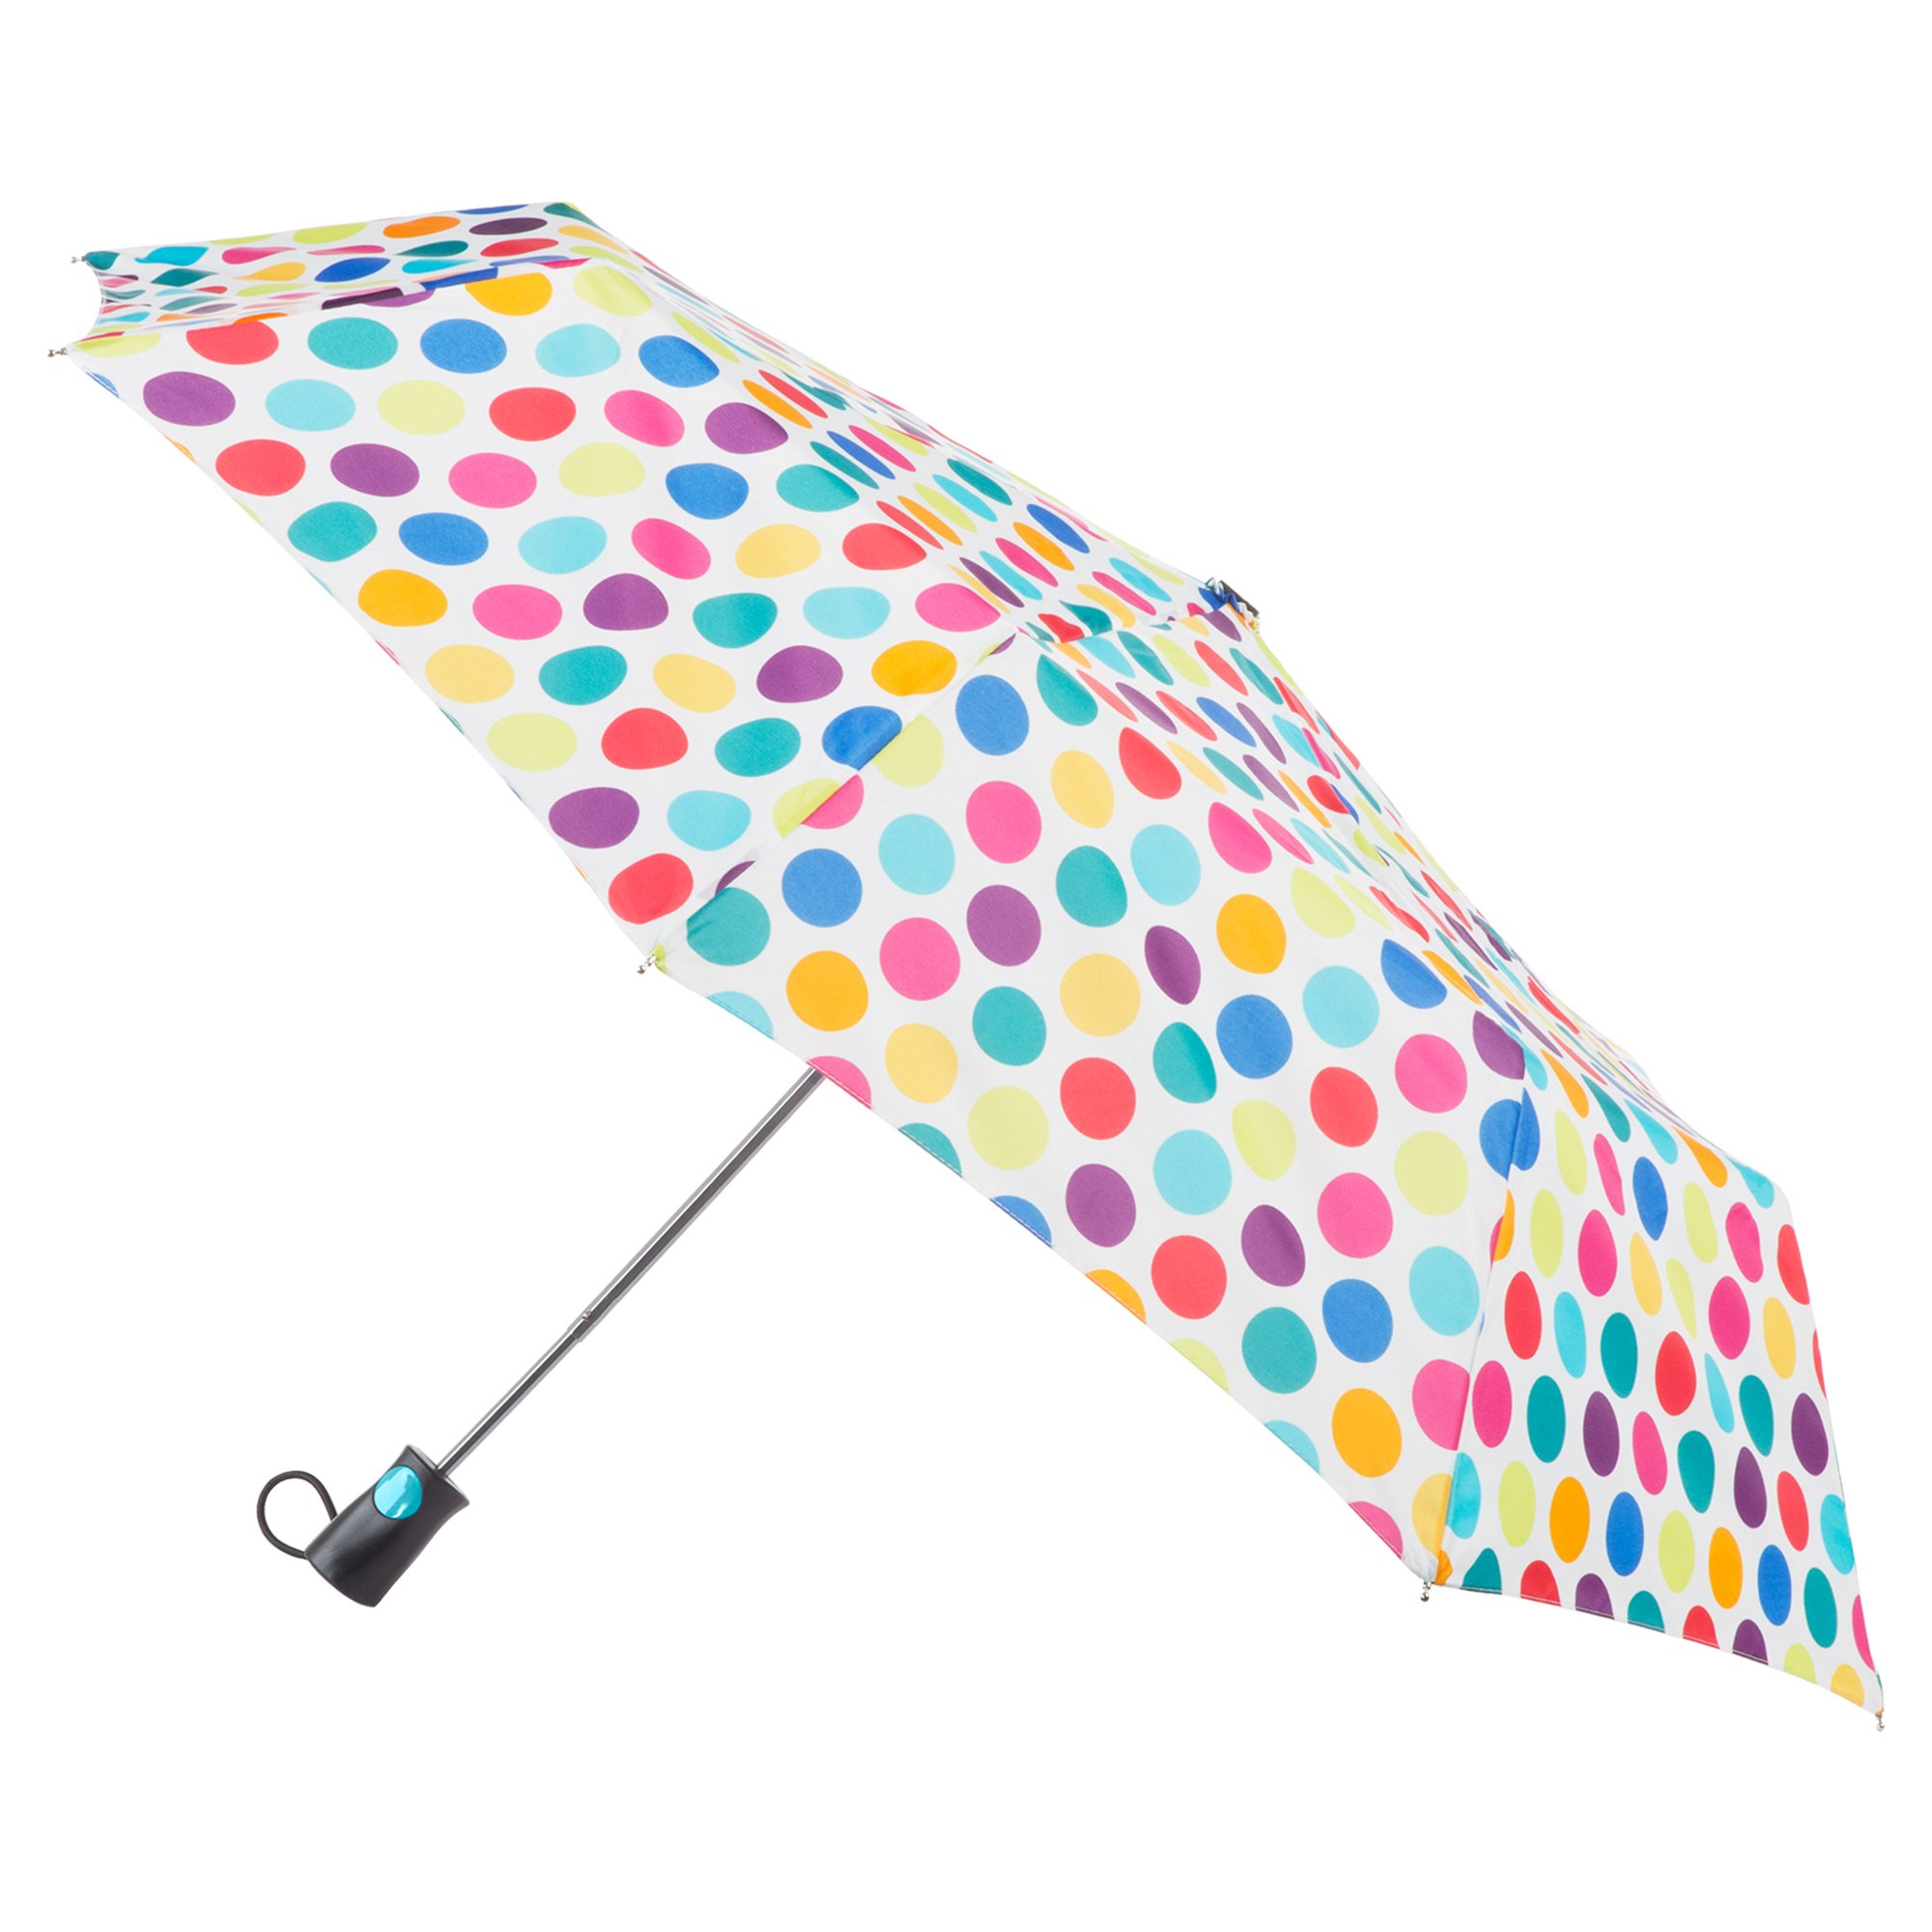 totes Women's Sunguard One-Touch Auto Open Umbrella with Neverwet, Judy Garland